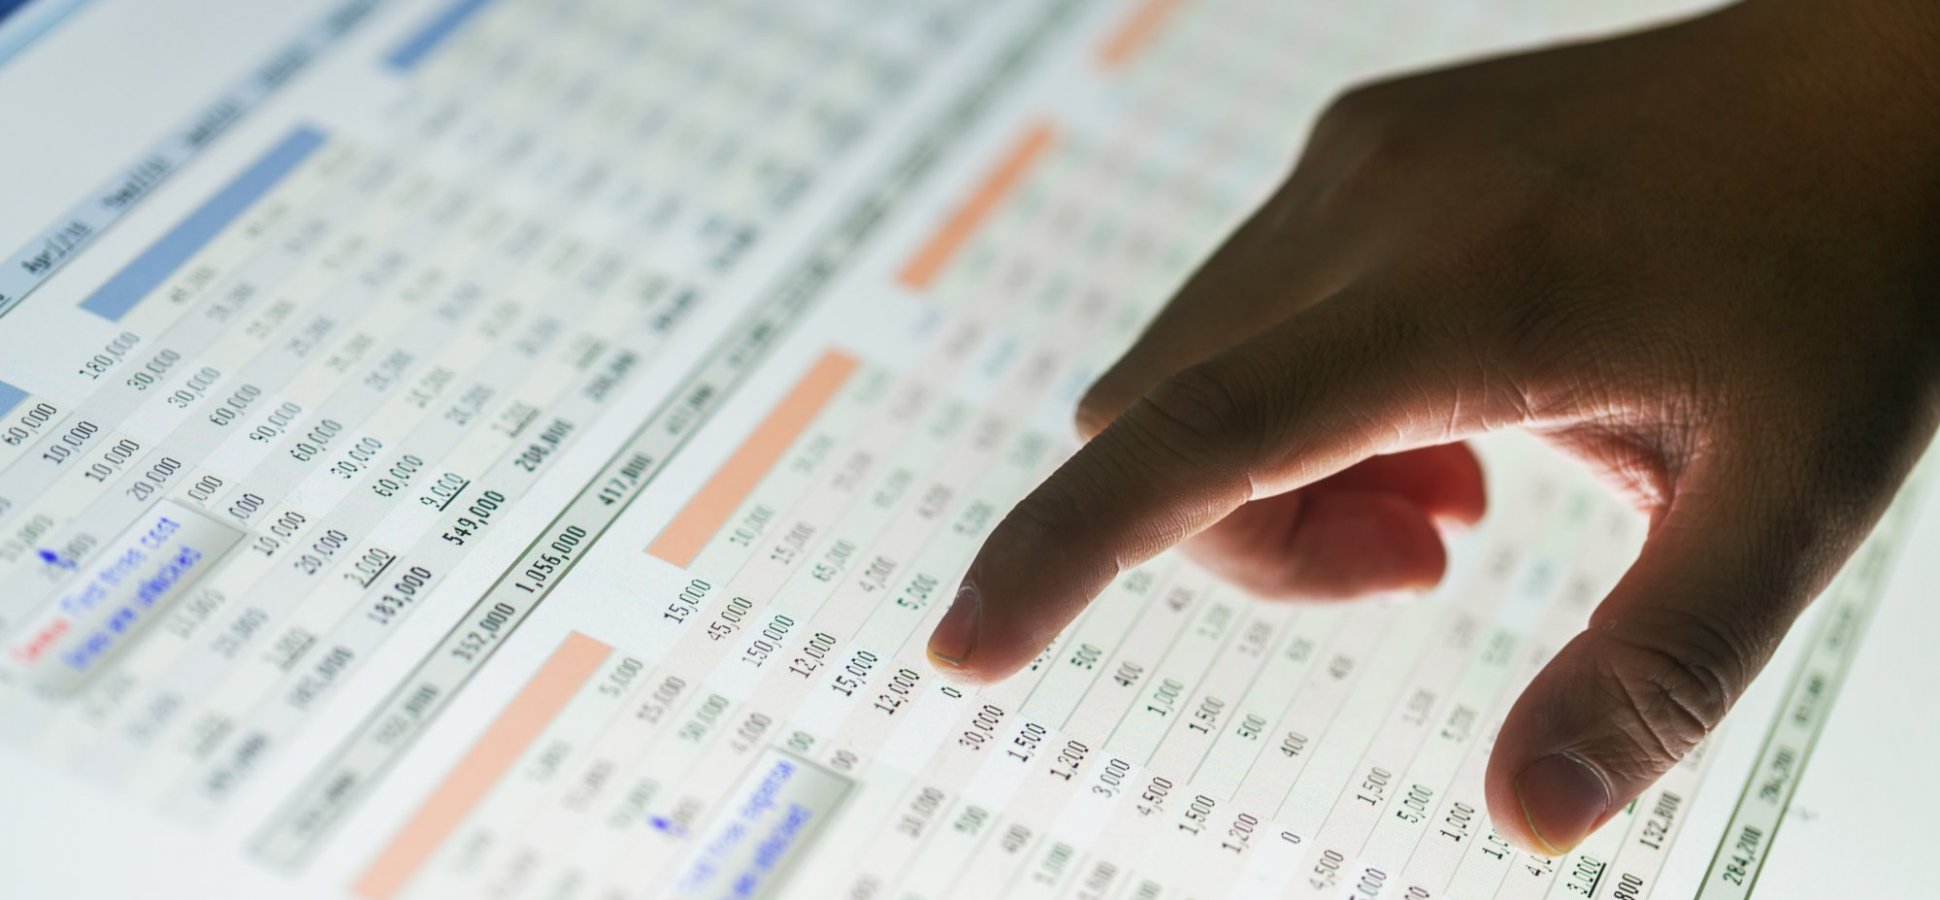 These Are 15 Free Excel Templates You Can Use to Make More Money